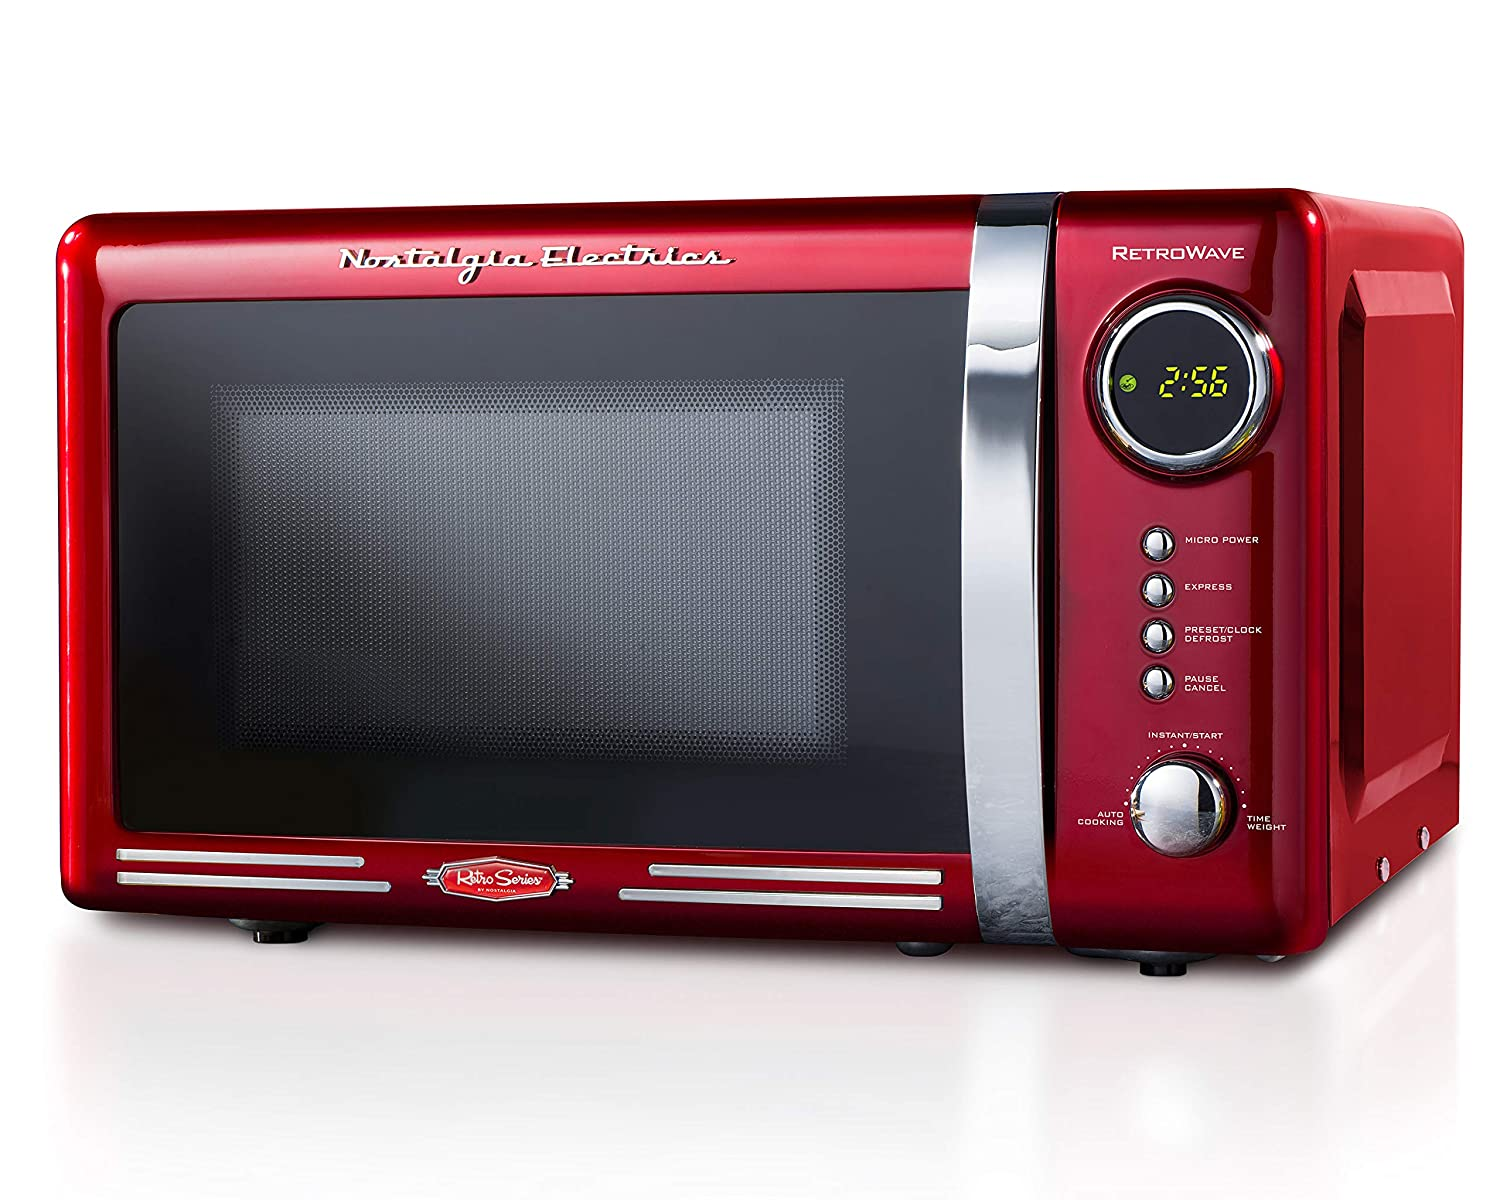 Nostalgia RMO770RED Retro 700-Watt Countertop Microwave Oven 0.7 Cu.Ft, Red